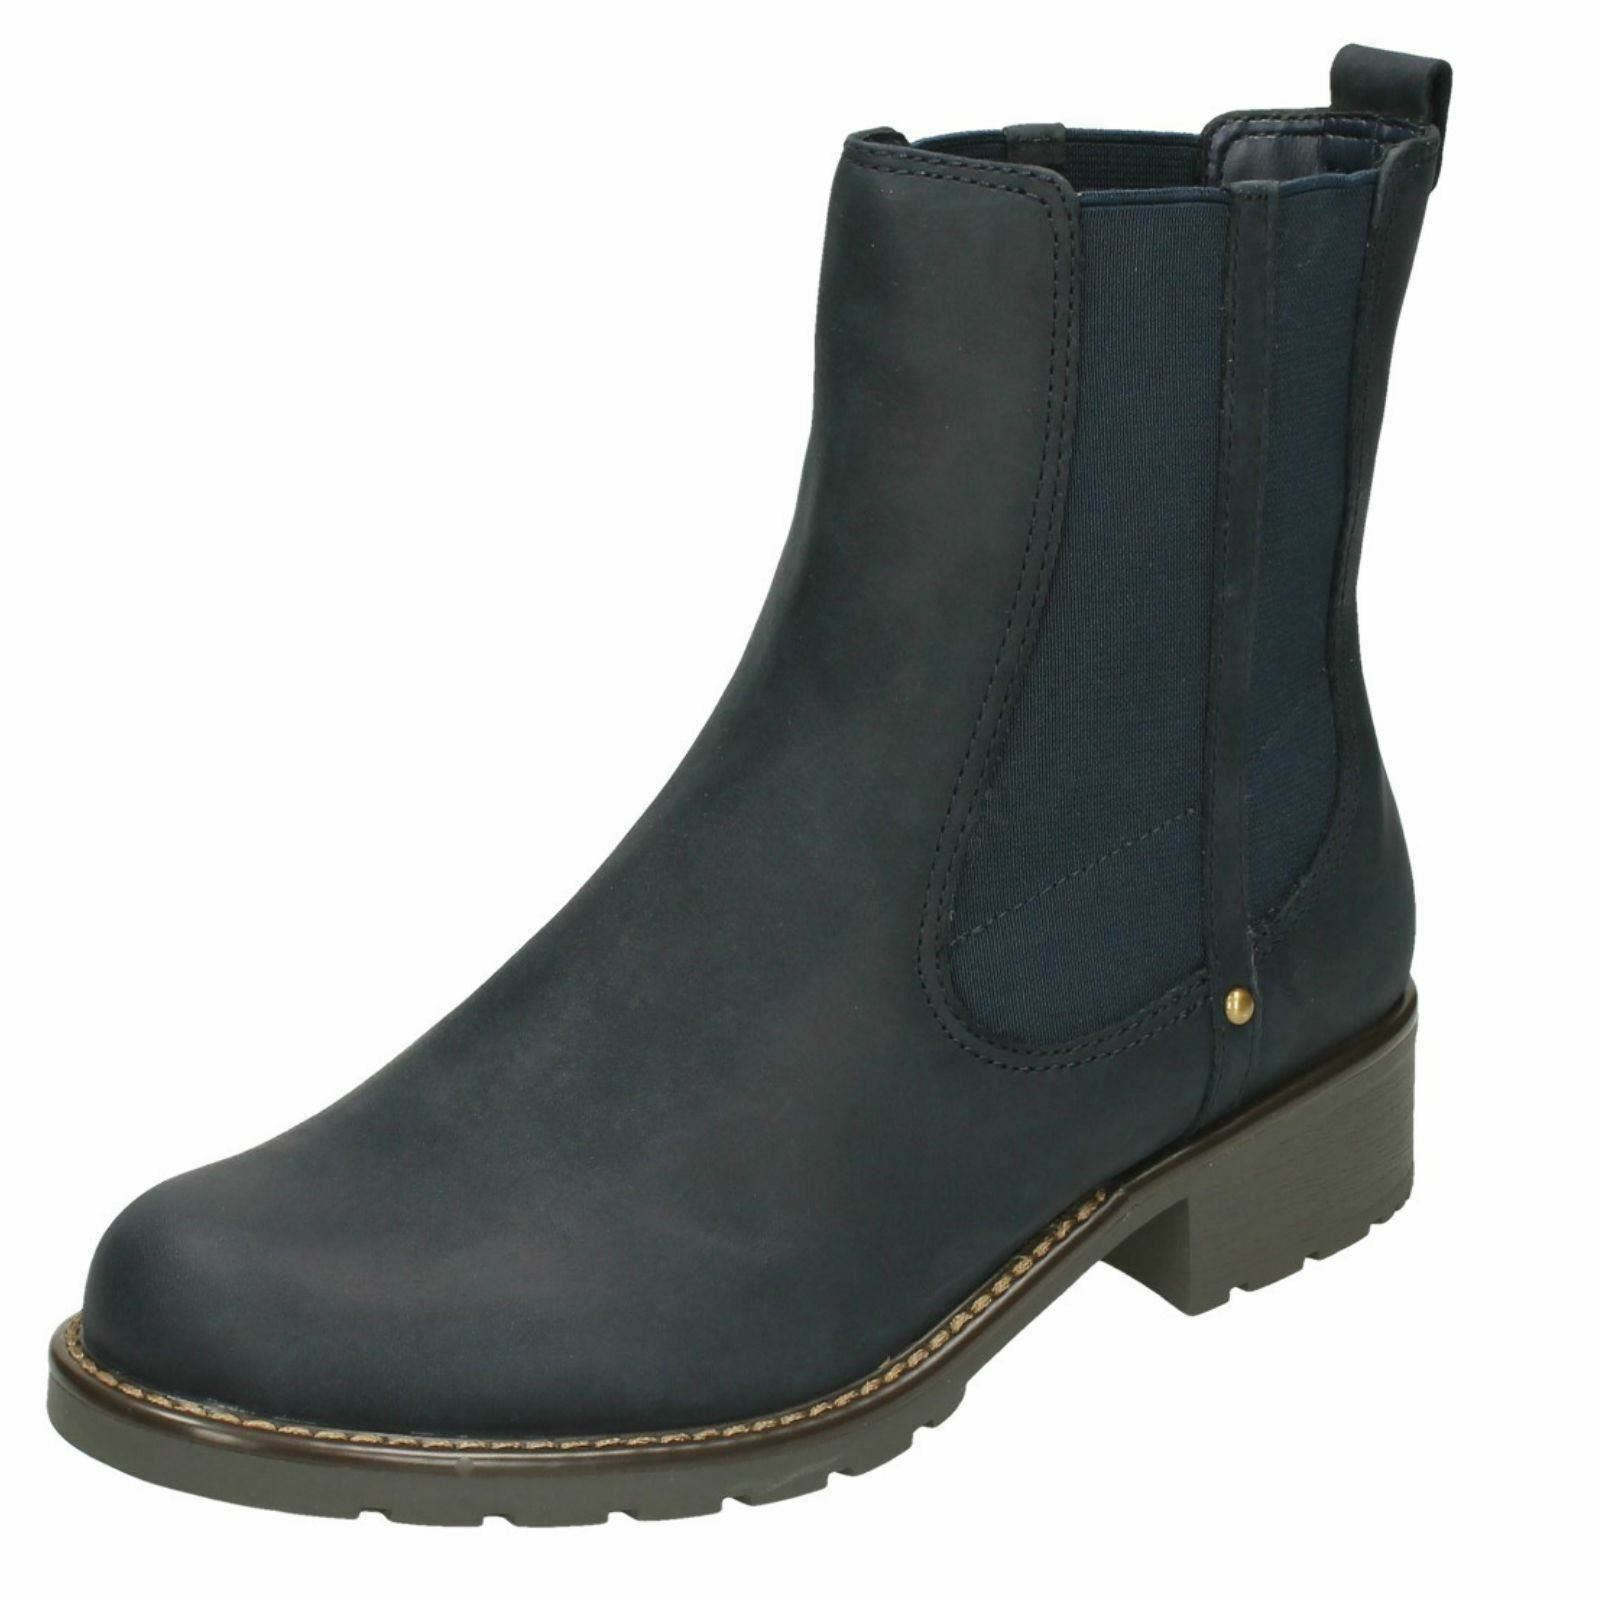 Zapatos especiales con descuento Ladies Clarks Orinoco Club Navy Oiled Leather Ankle Boots D & E Fitting